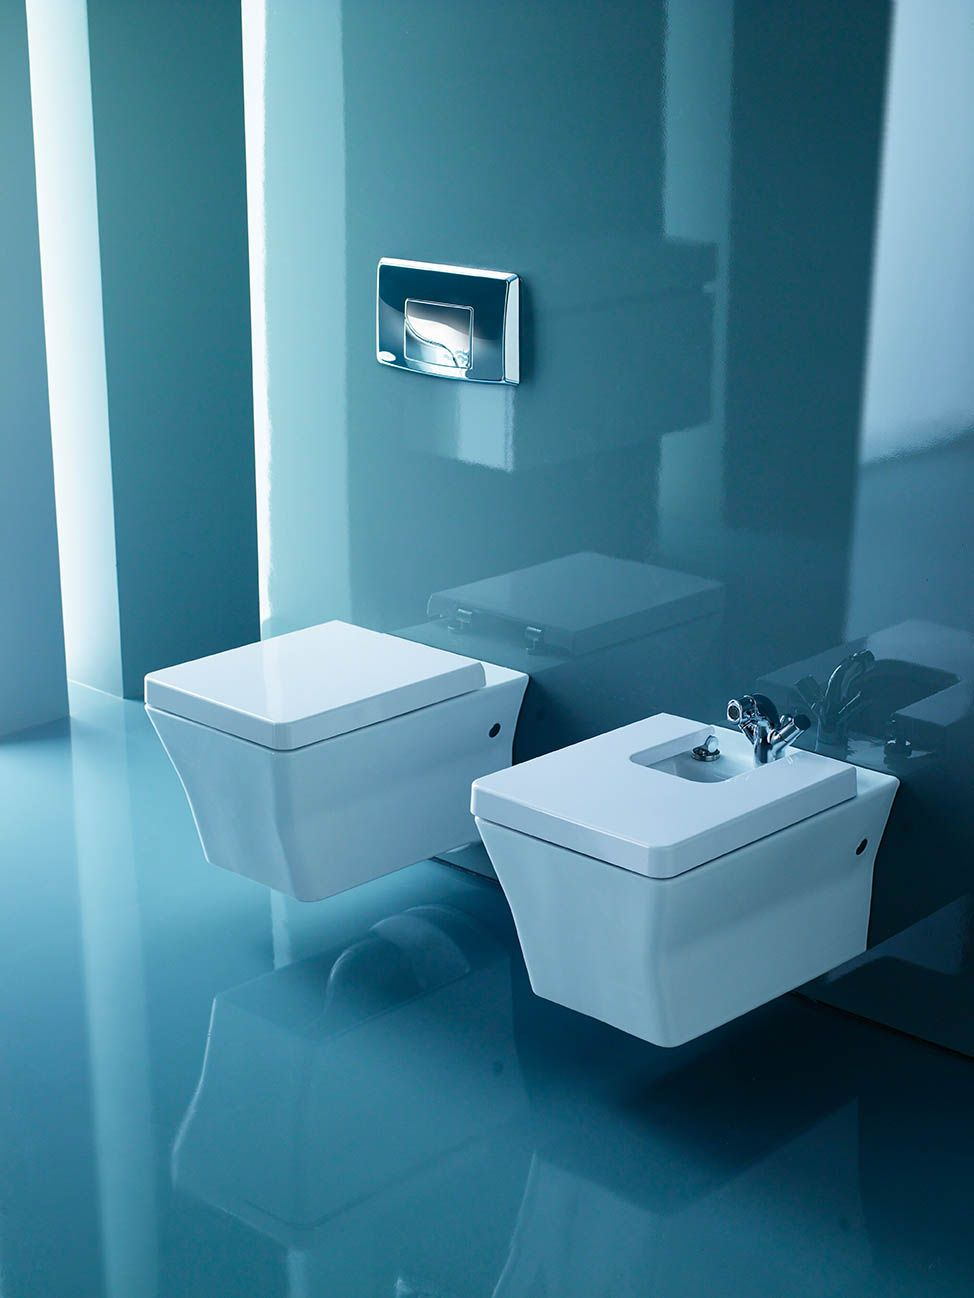 The Reve Wall Hung WC With Soft Close Lid And Dual Flush, Is And Bidet From  Kohler.